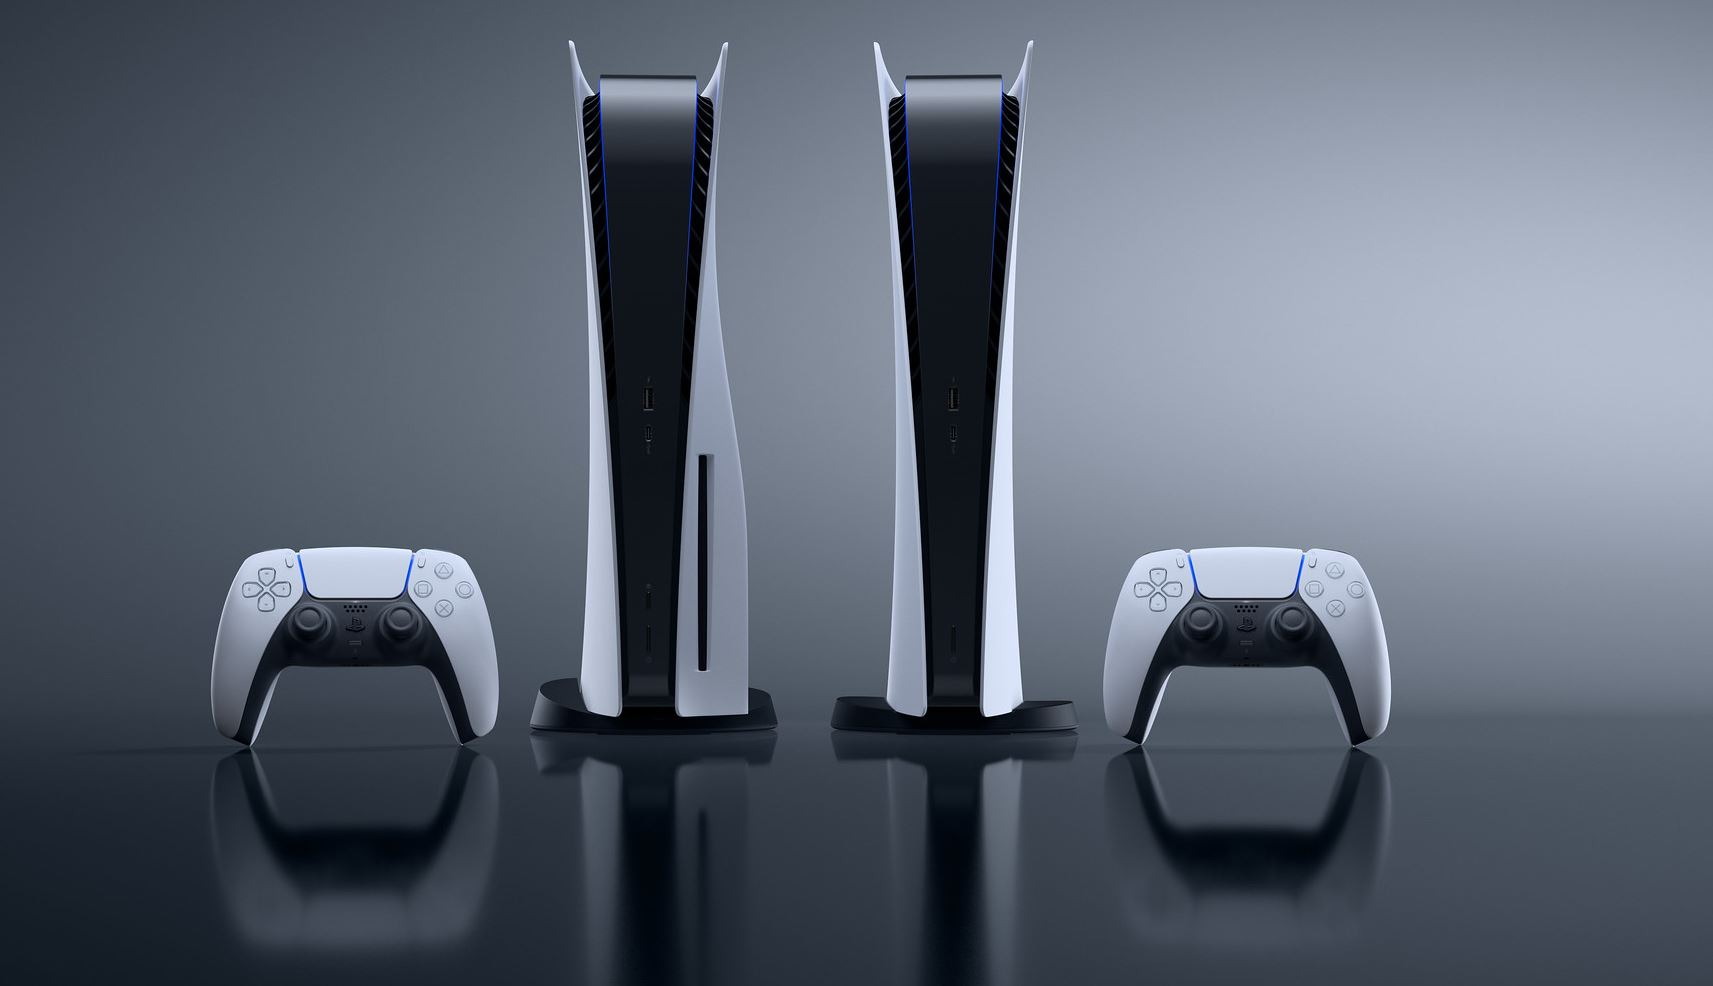 sony-releases-set-of-gorgeous-high-resolution-images-of-the-ps5-and-its-accessories